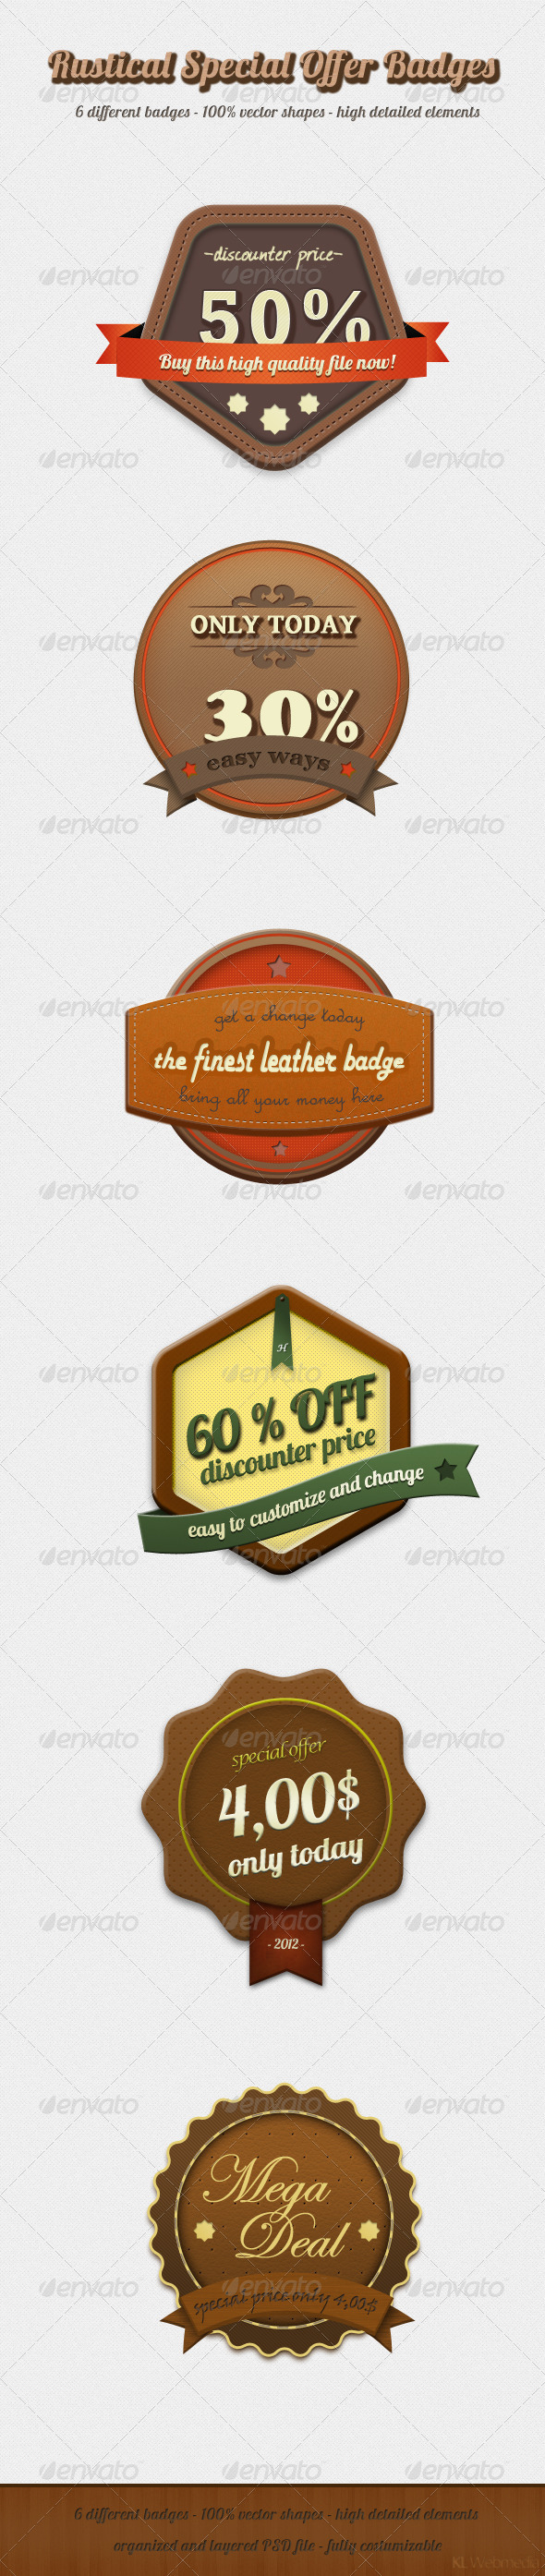 Rustical Special Offer Badges - Badges &amp; Stickers Web Elements